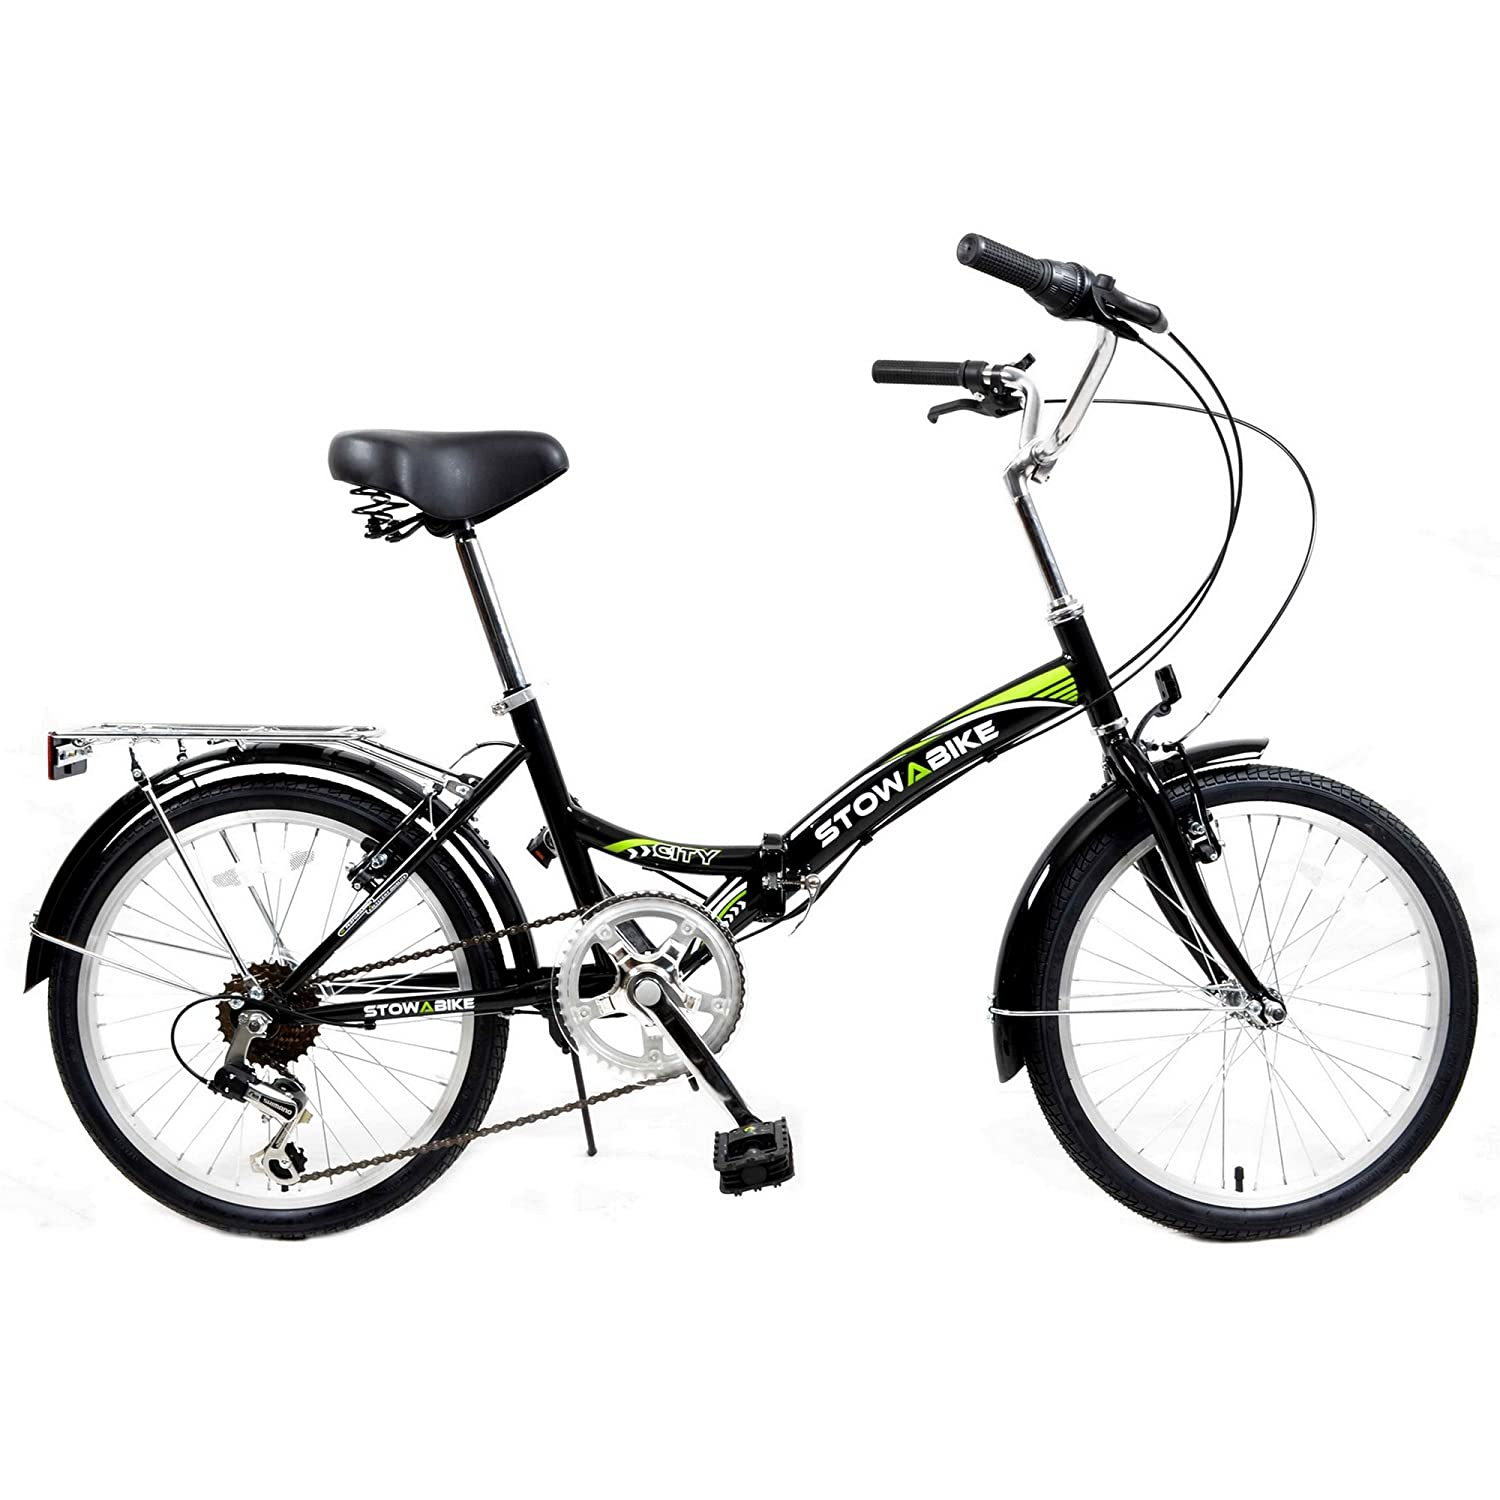 Stowabike folding city compact bike black green amazon co uk sports outdoors